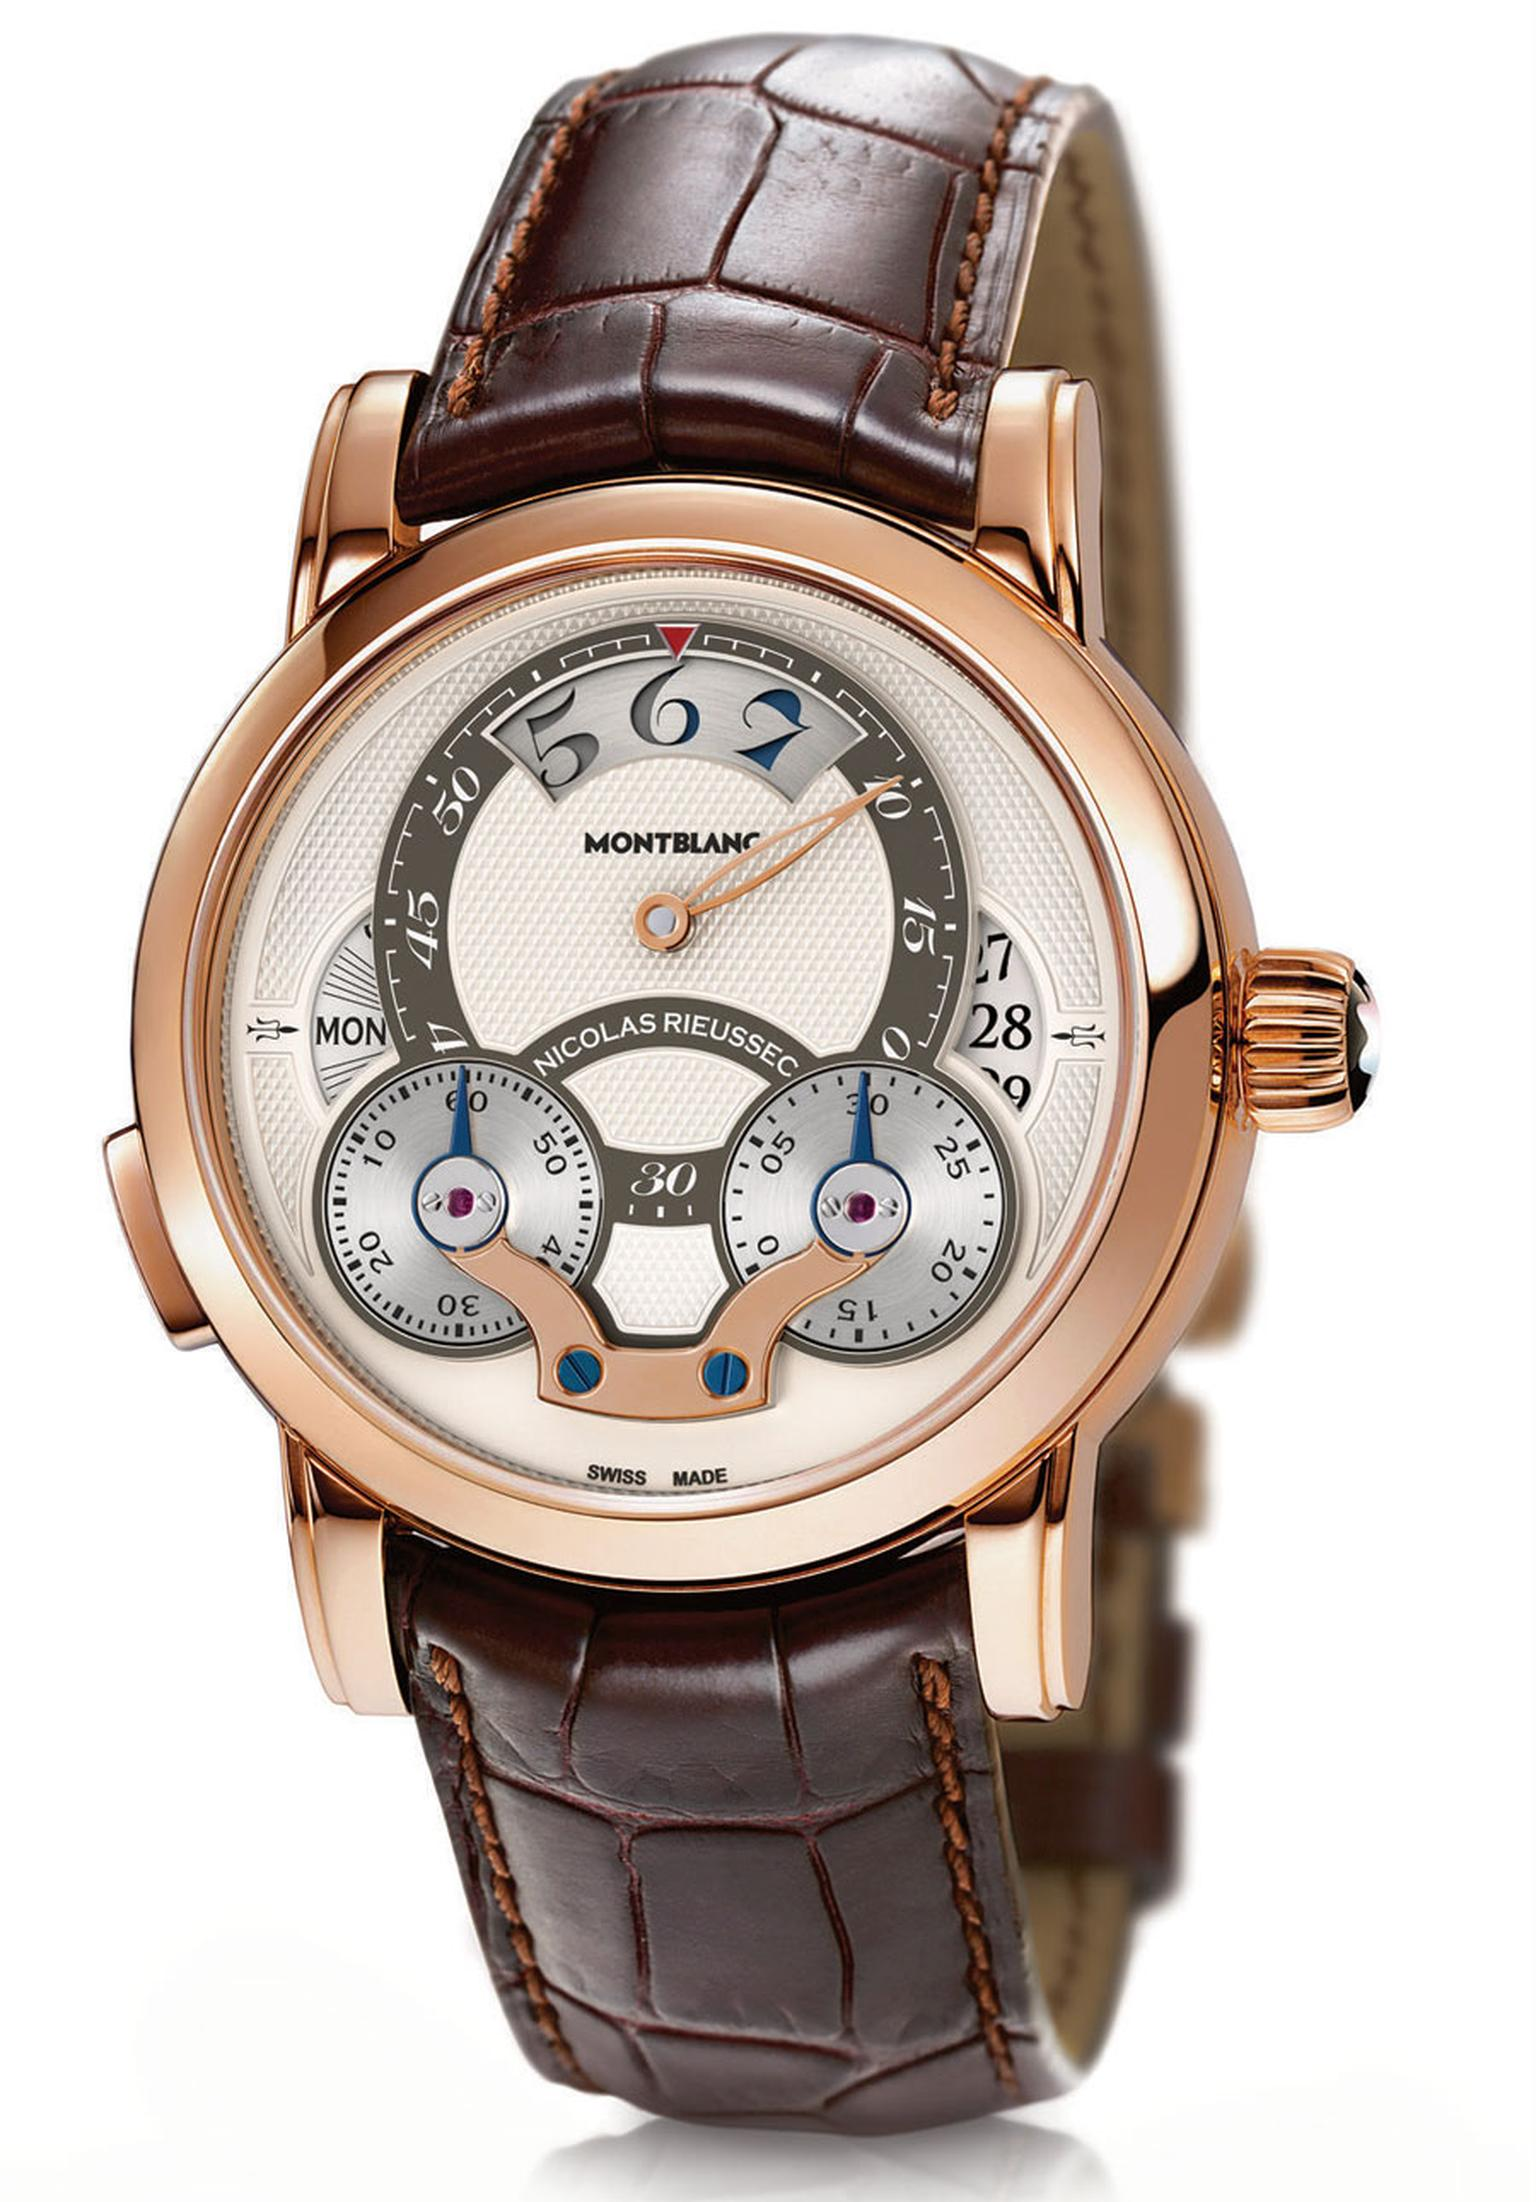 Montblanc-Nicolas-Rieussec-Chronograph-Rising-Hours-Side-High-Res.jpg